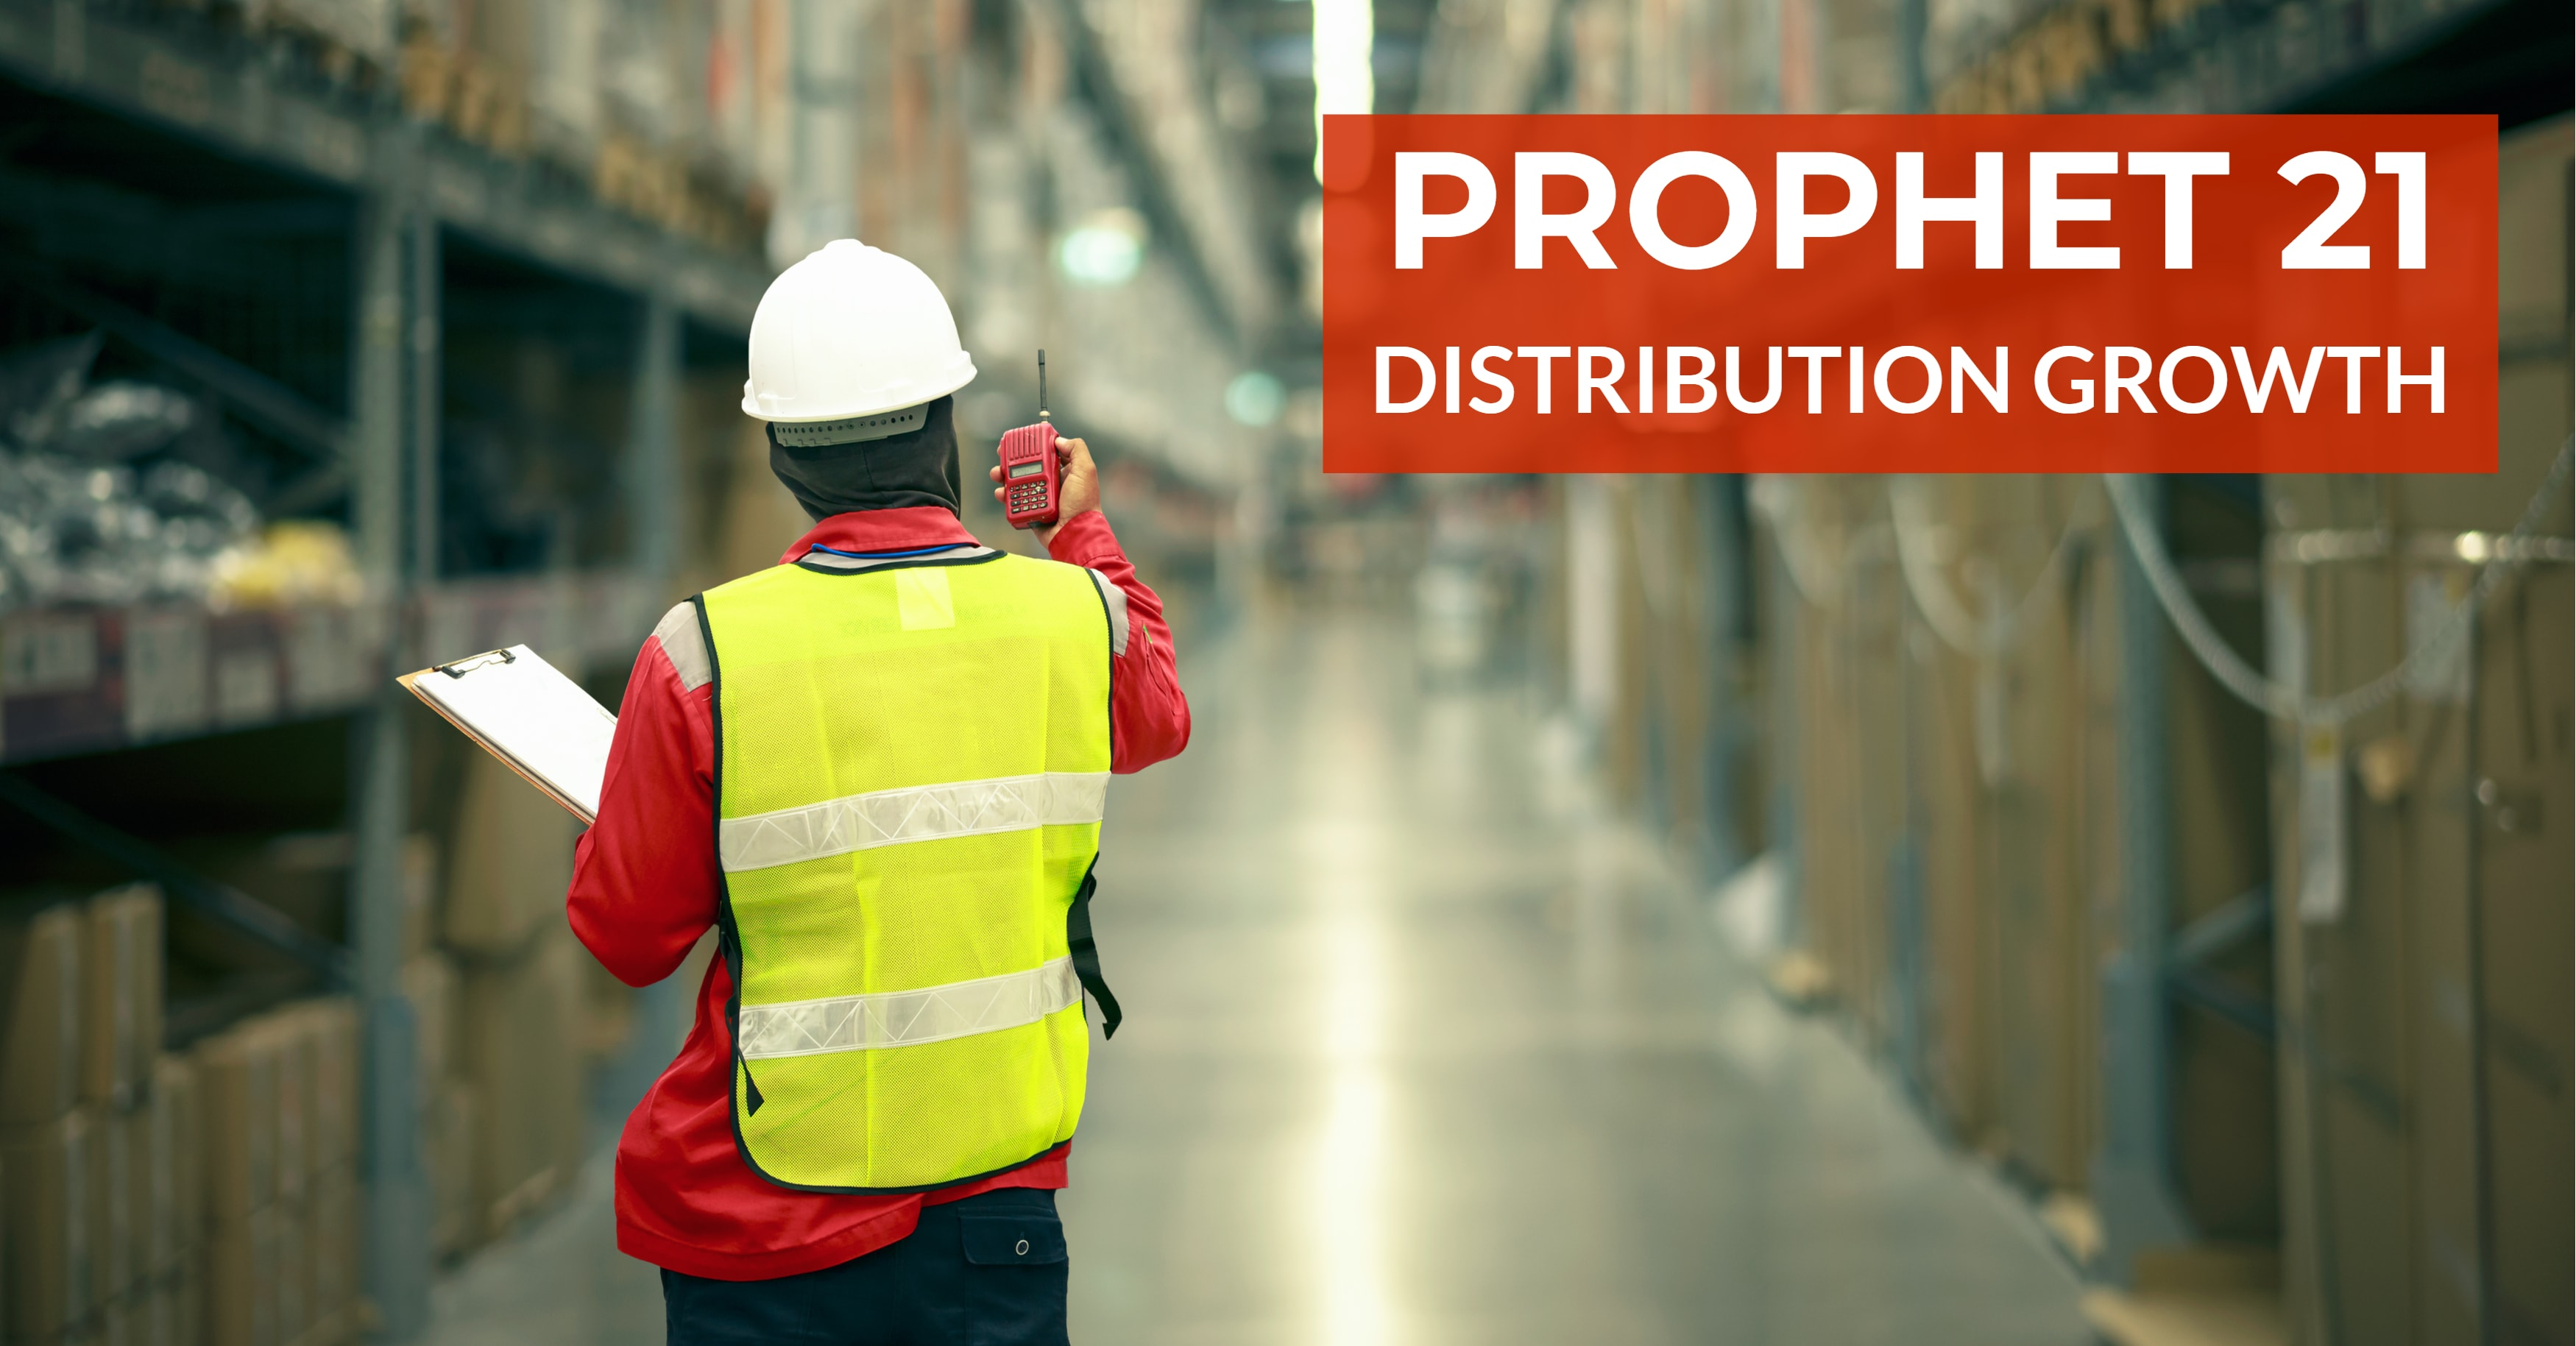 Prophet 21 Distribution Growth